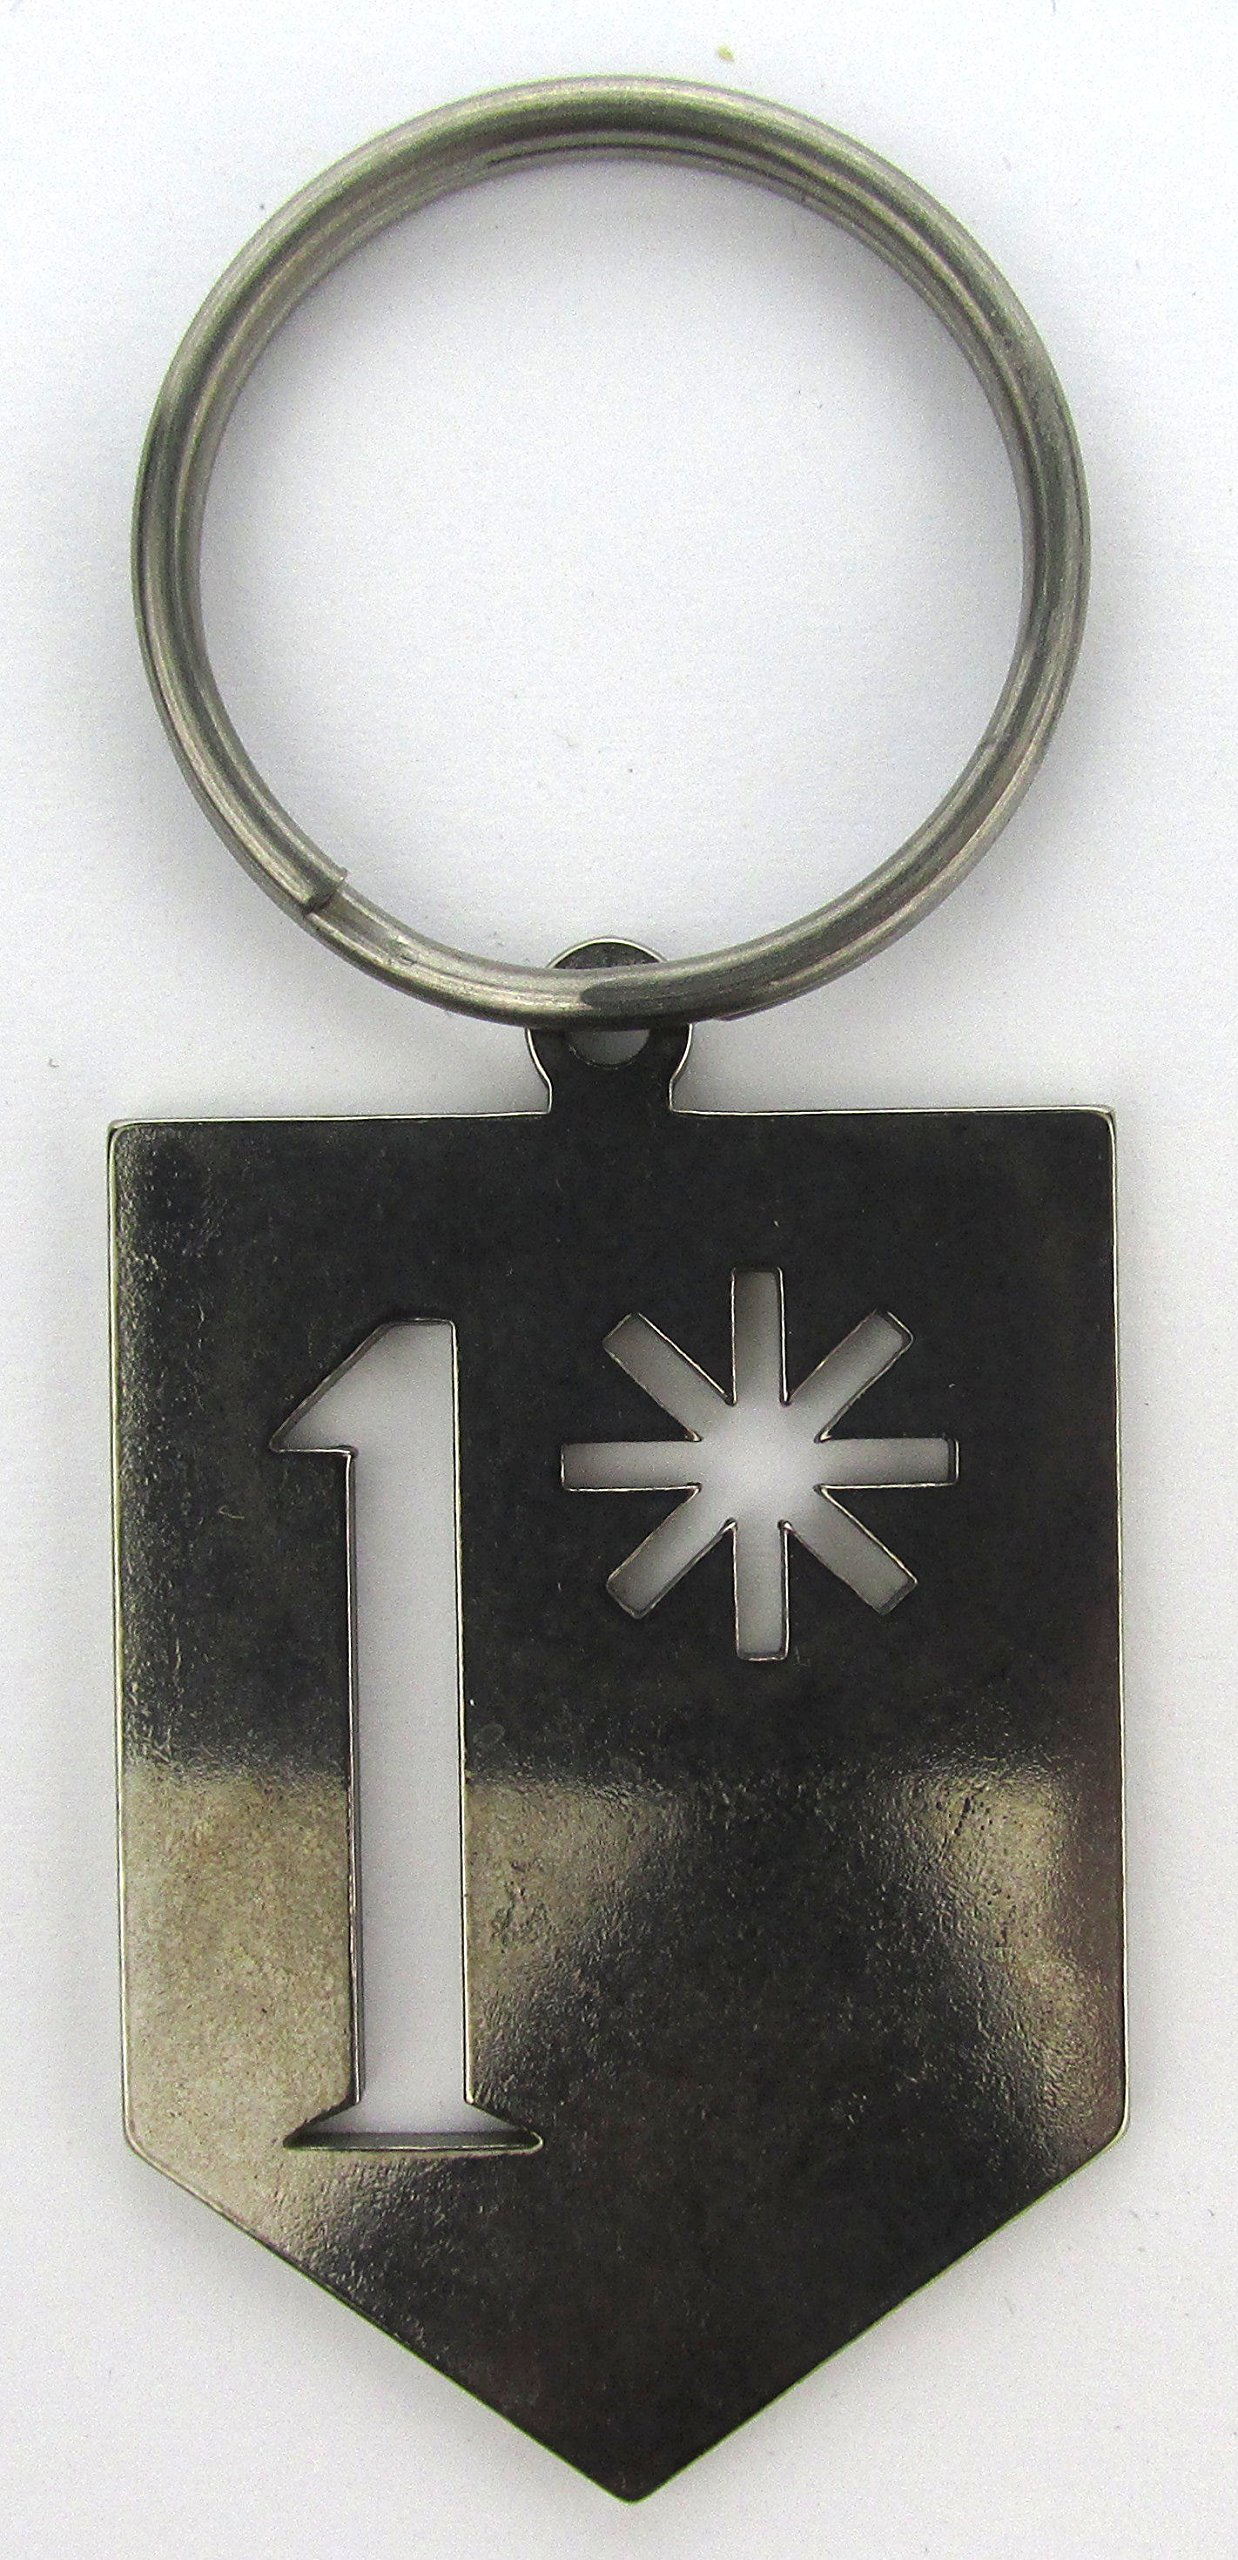 1 (Ass to Risk) Keychain by G.I. Jewelry (Image #1)